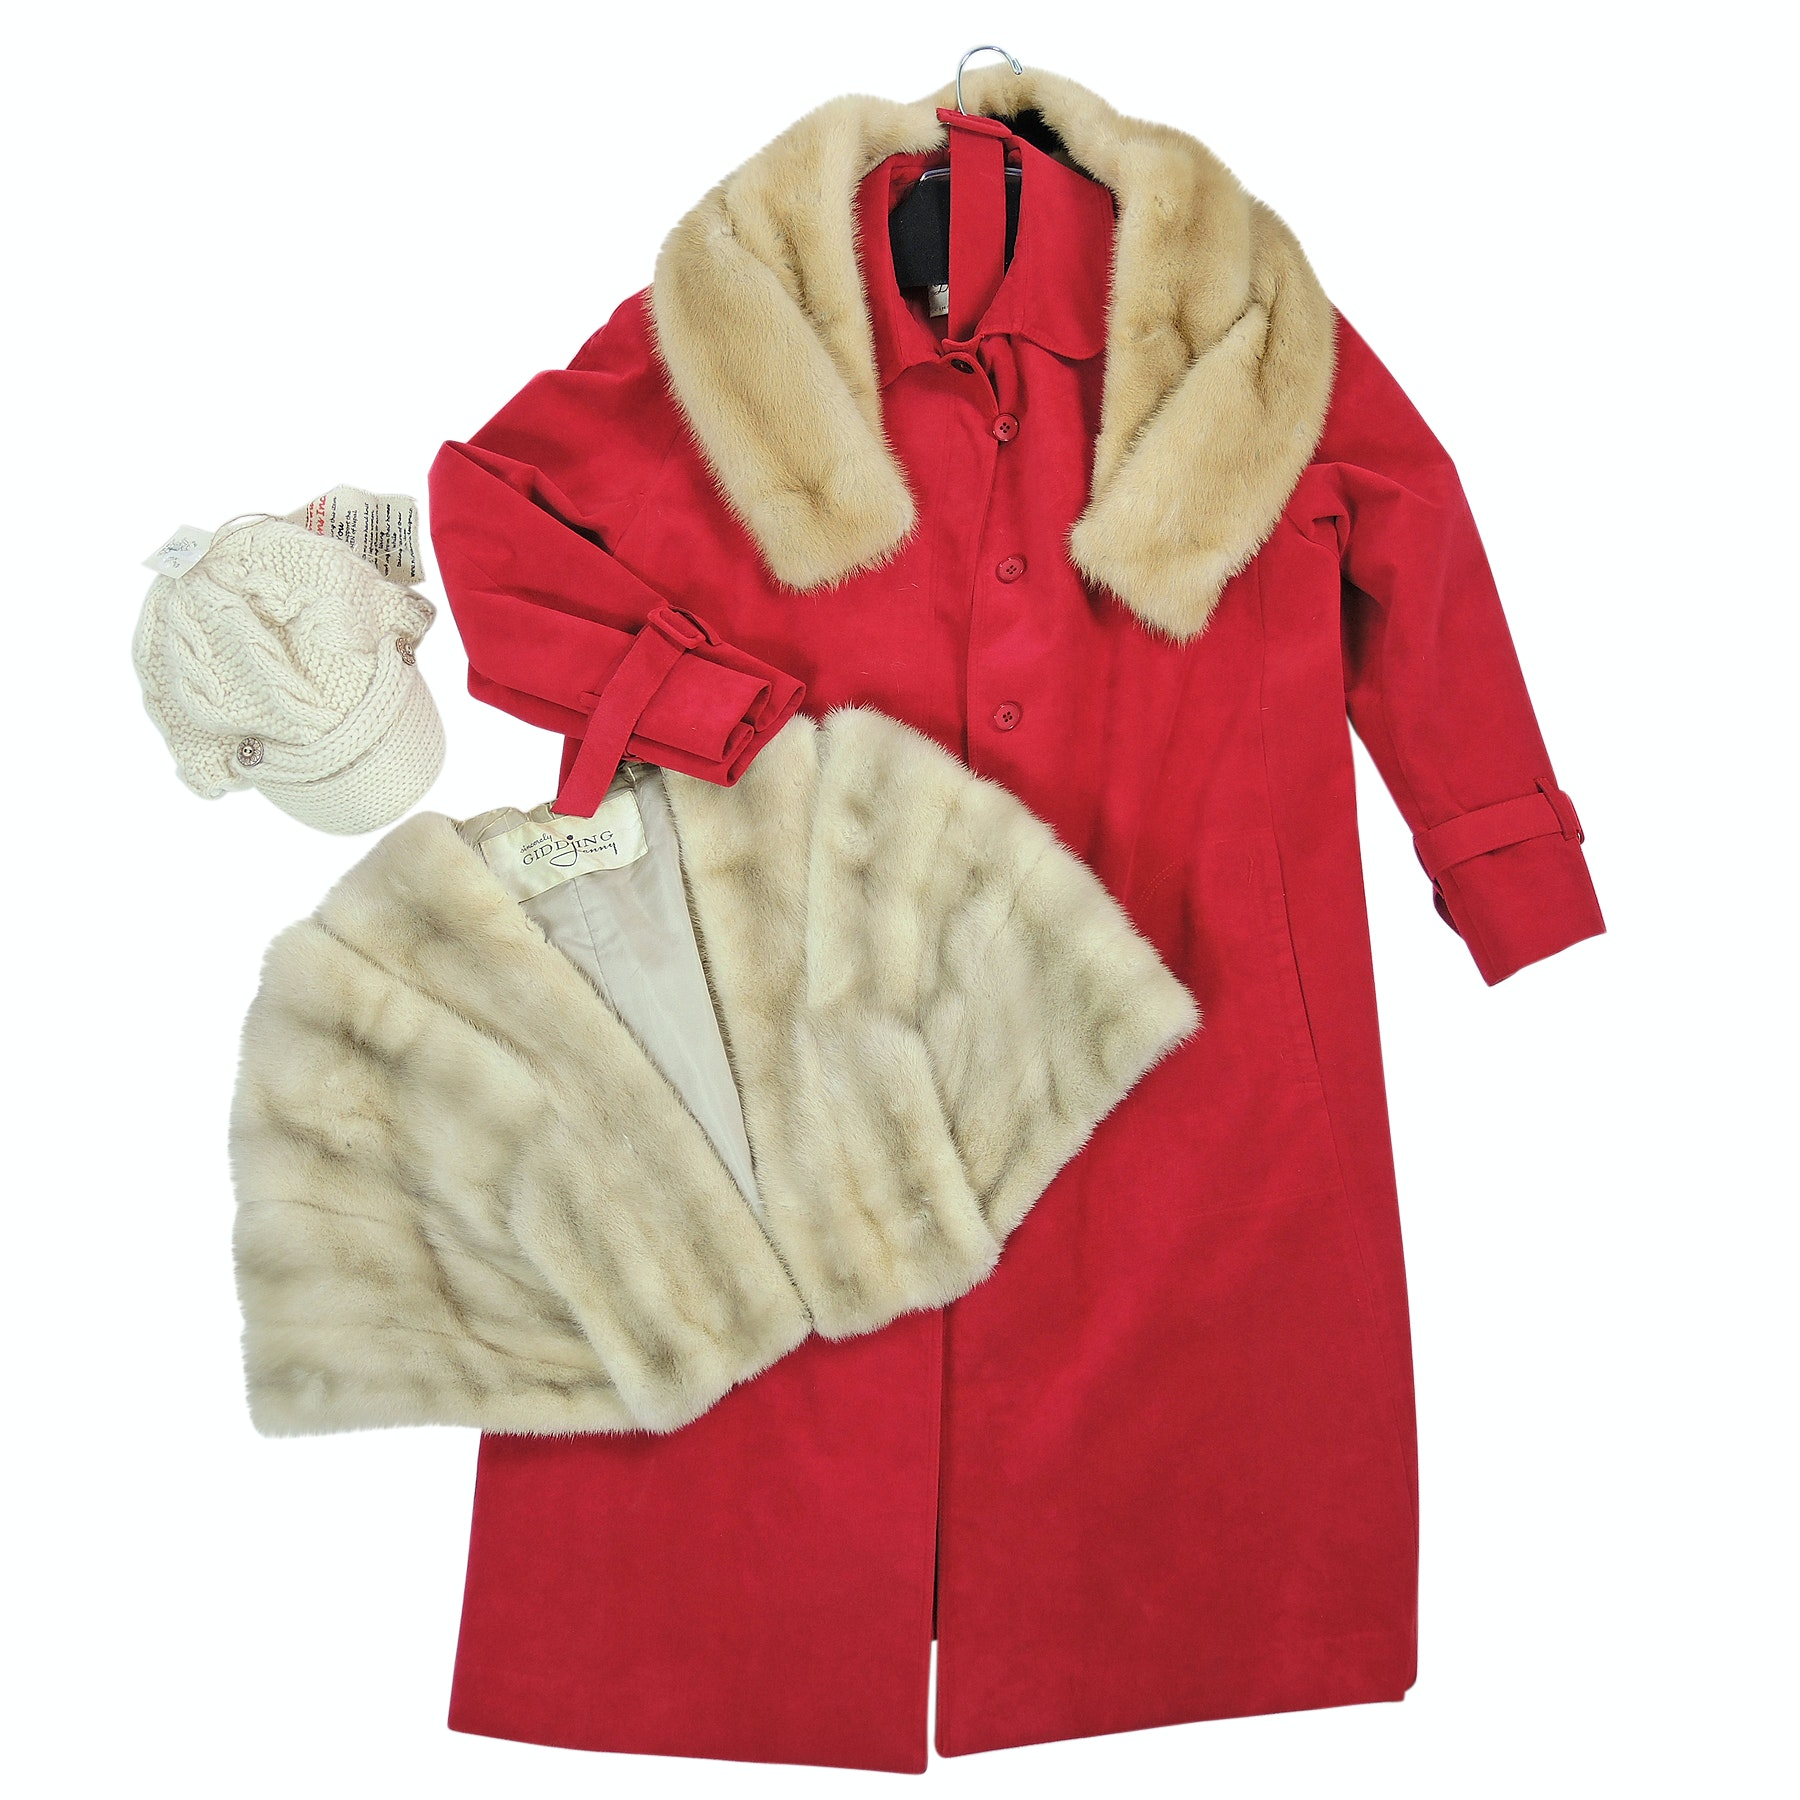 Adolph Schuman Ultrasuede Coat with Mink Fur Stole, Mink Fur Collar and Knit Cap